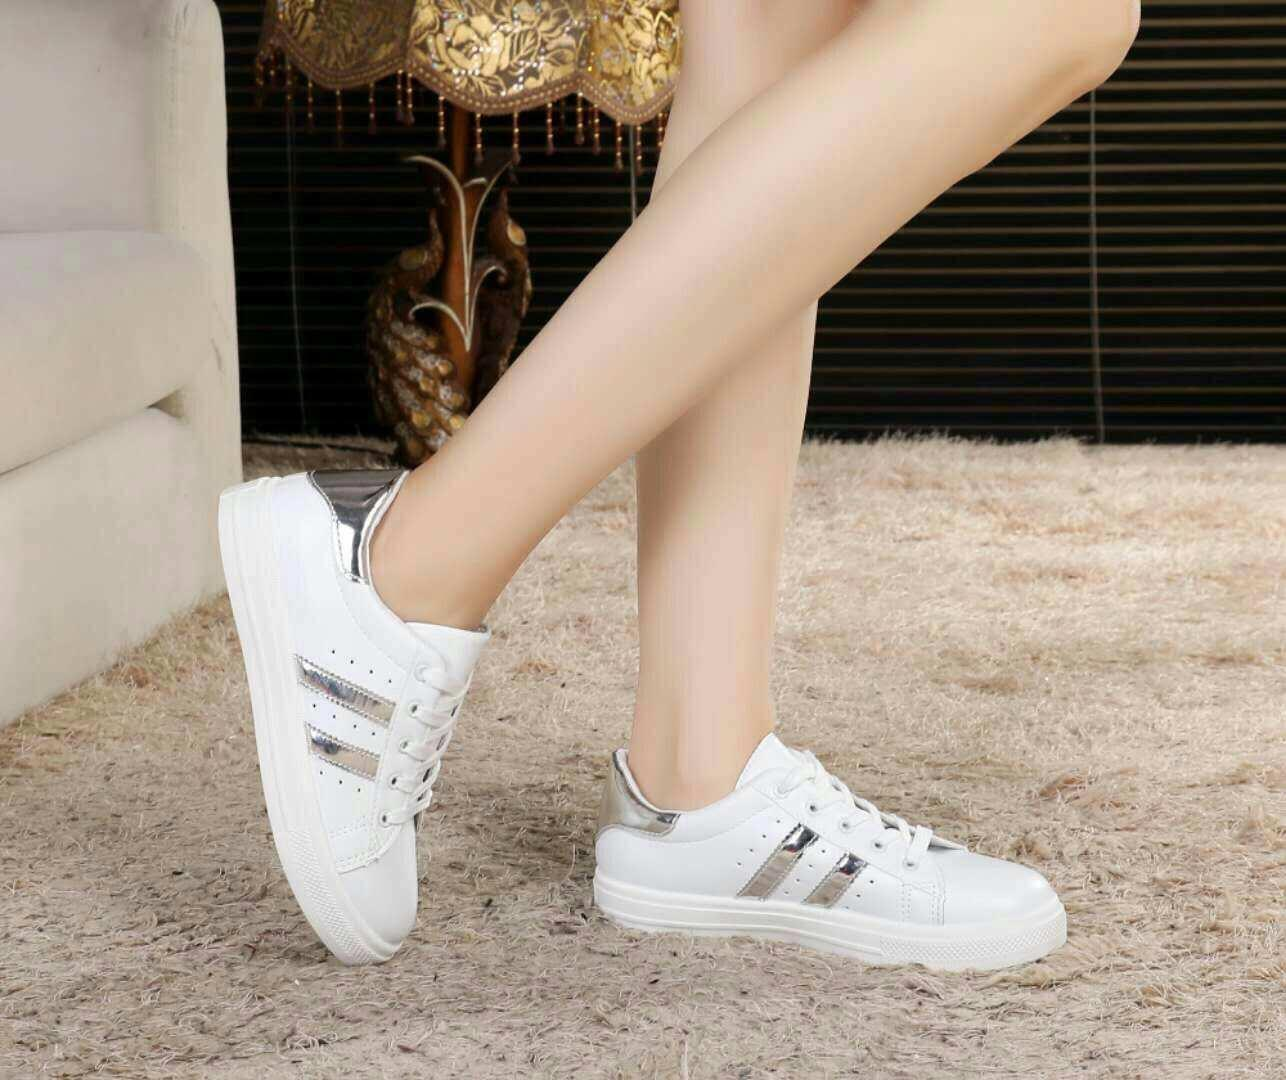 ca34757335da Sneakers for Women for sale - Running Shoes for Women online brands ...